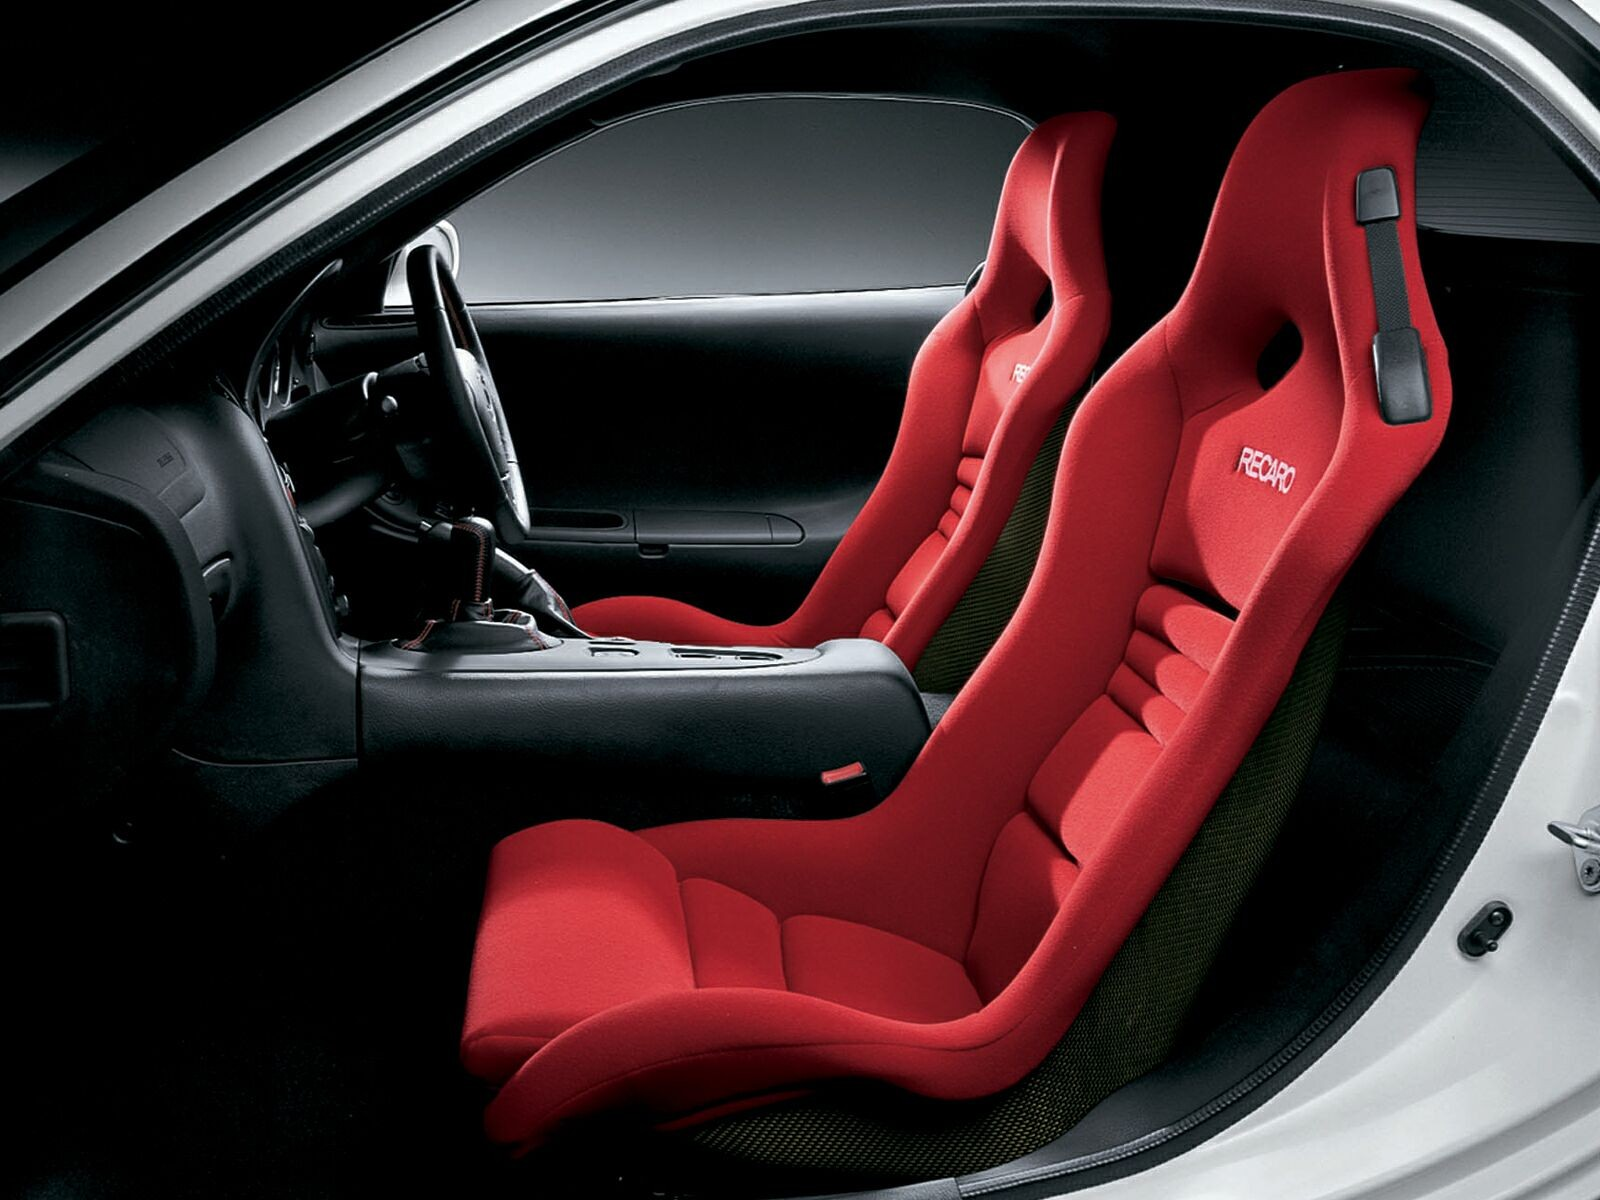 Questions About What Seats Fit Good In Fd S Rx7club Com